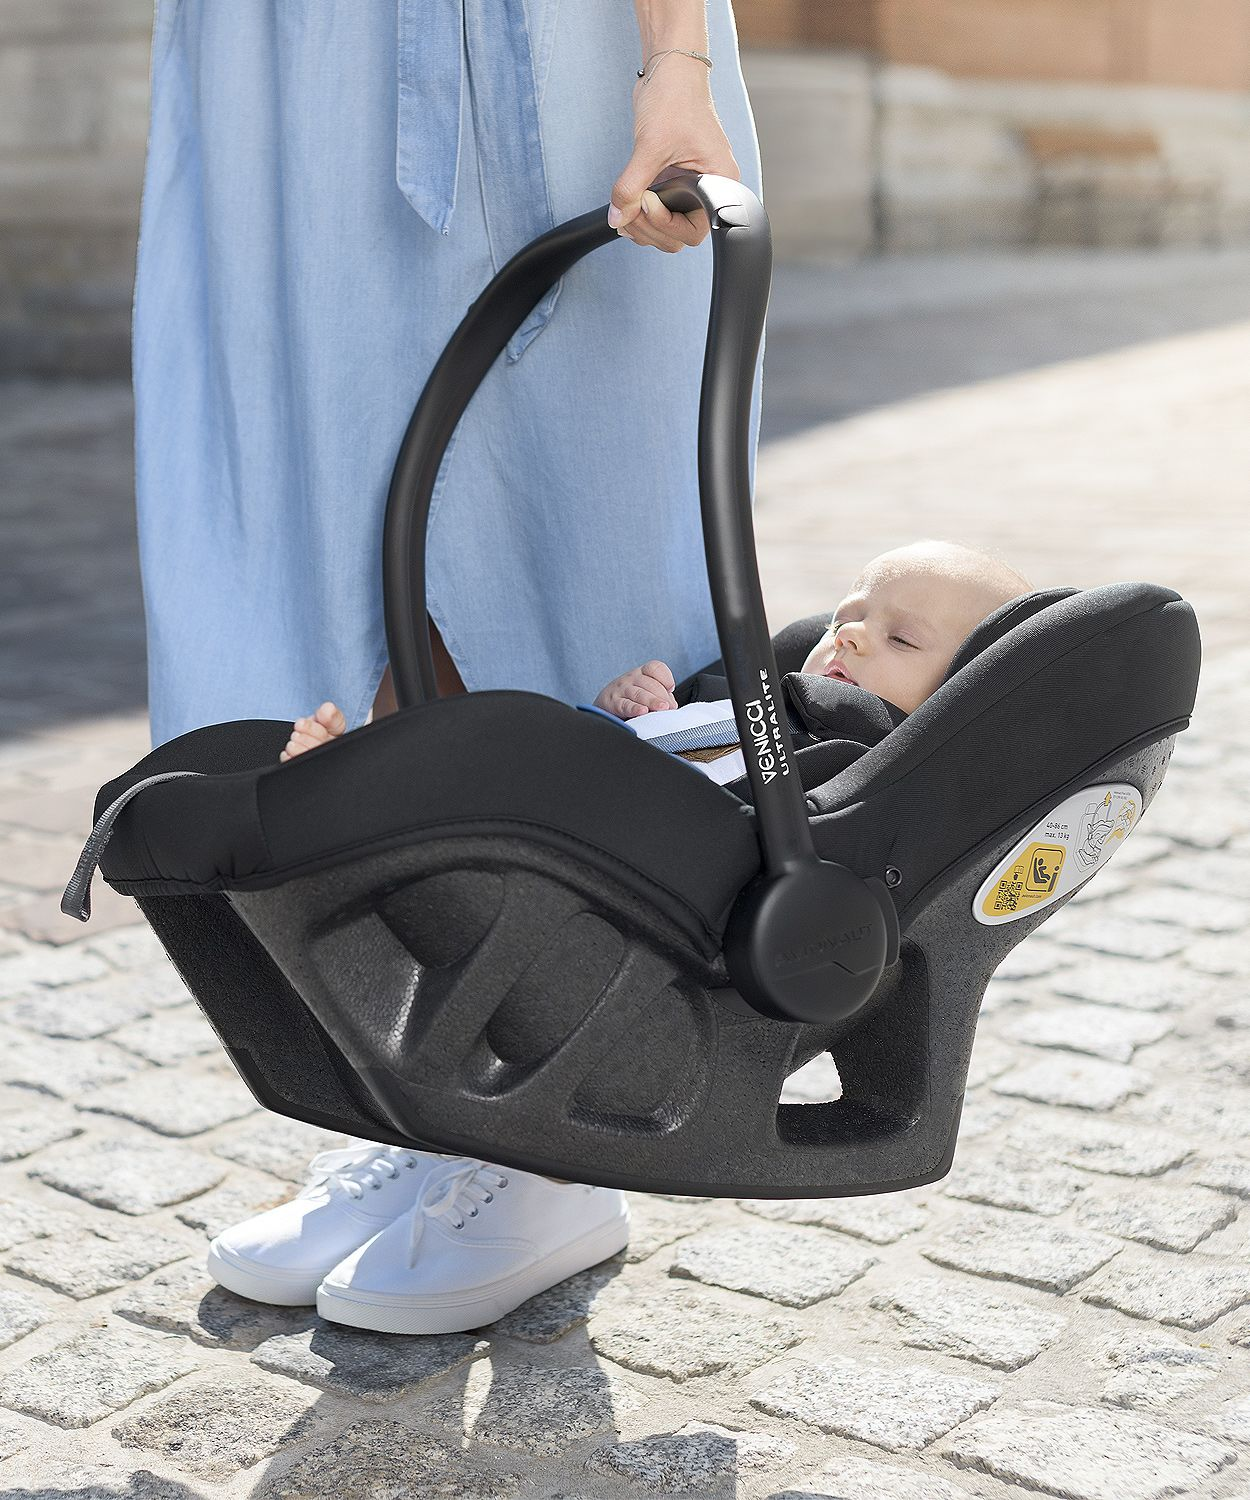 venicci tinum ultralight infant carrier